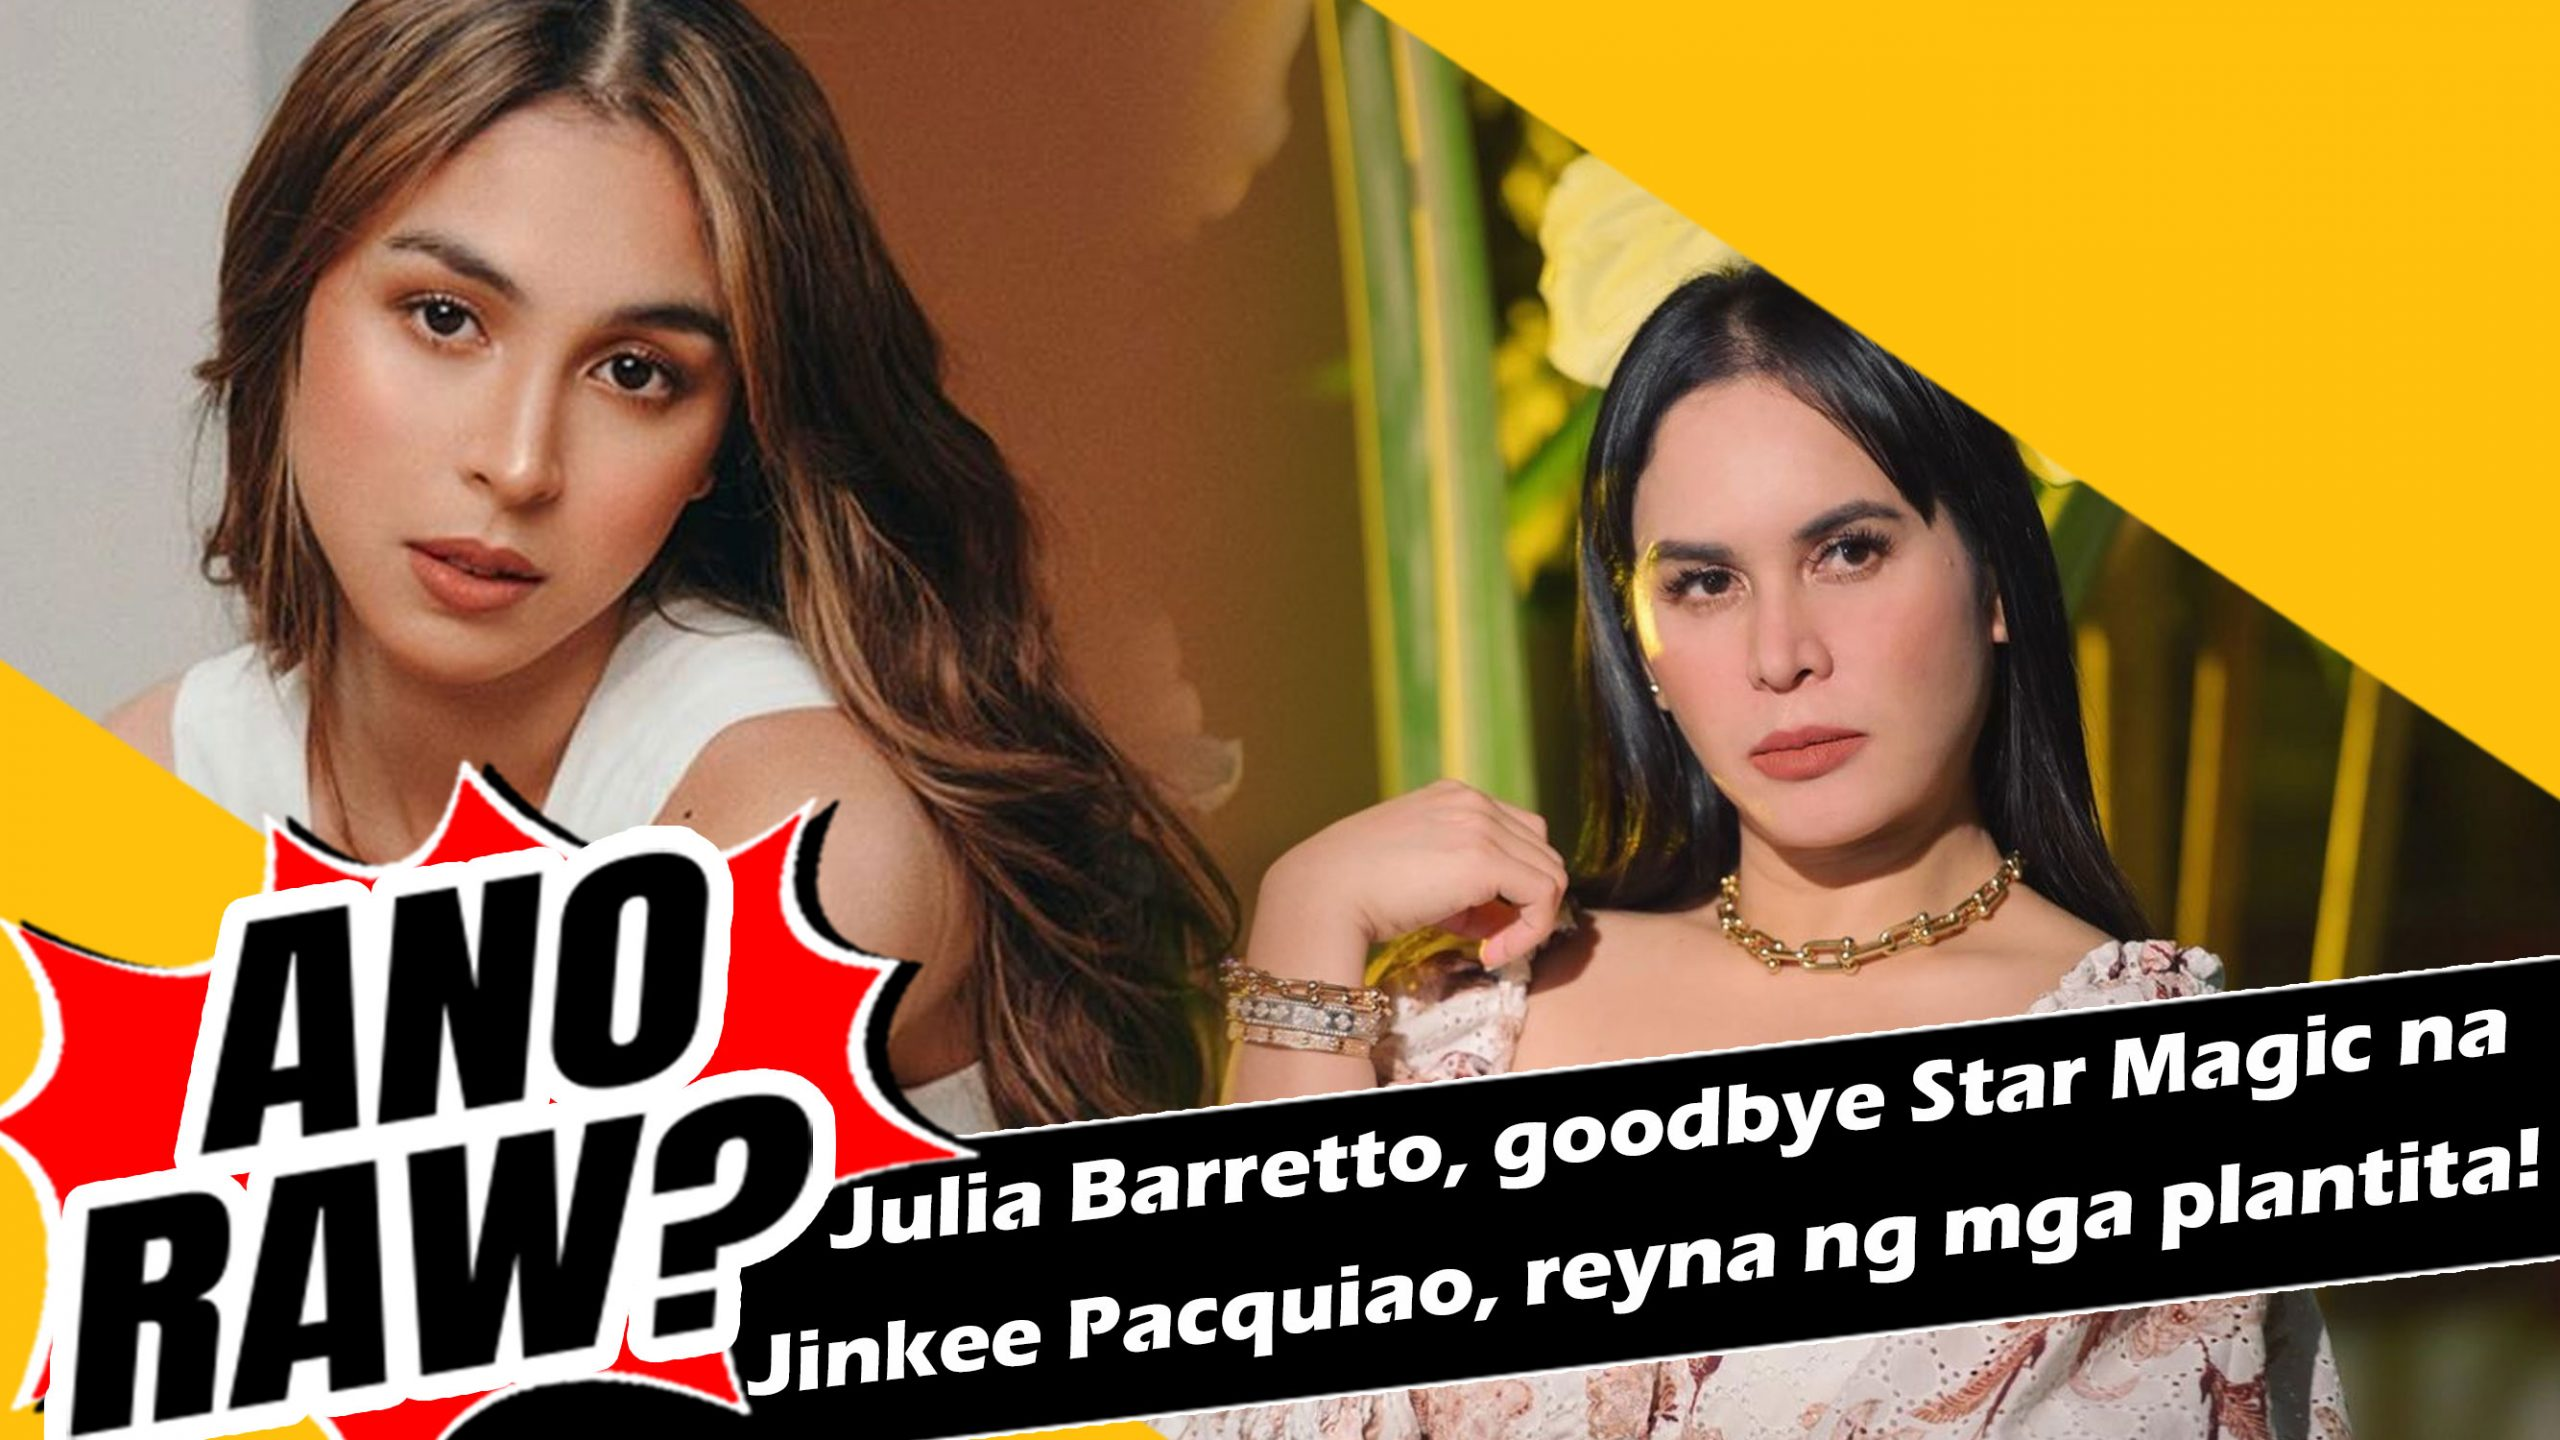 Julia Barretto, goodbye Star Magic na | ANO RAW